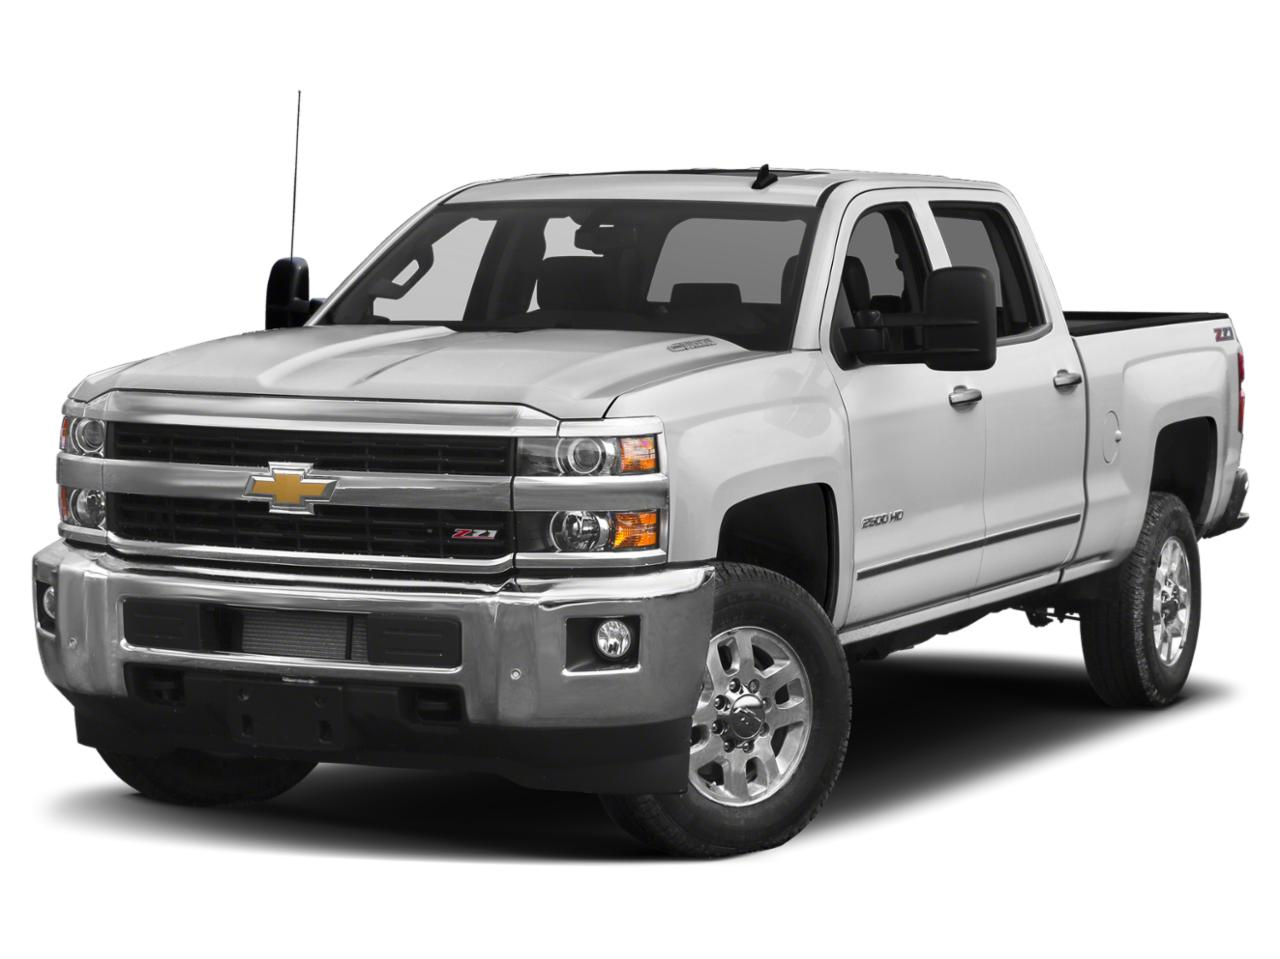 2017 Chevrolet Silverado 3500HD Vehicle Photo in Odessa, TX 79762